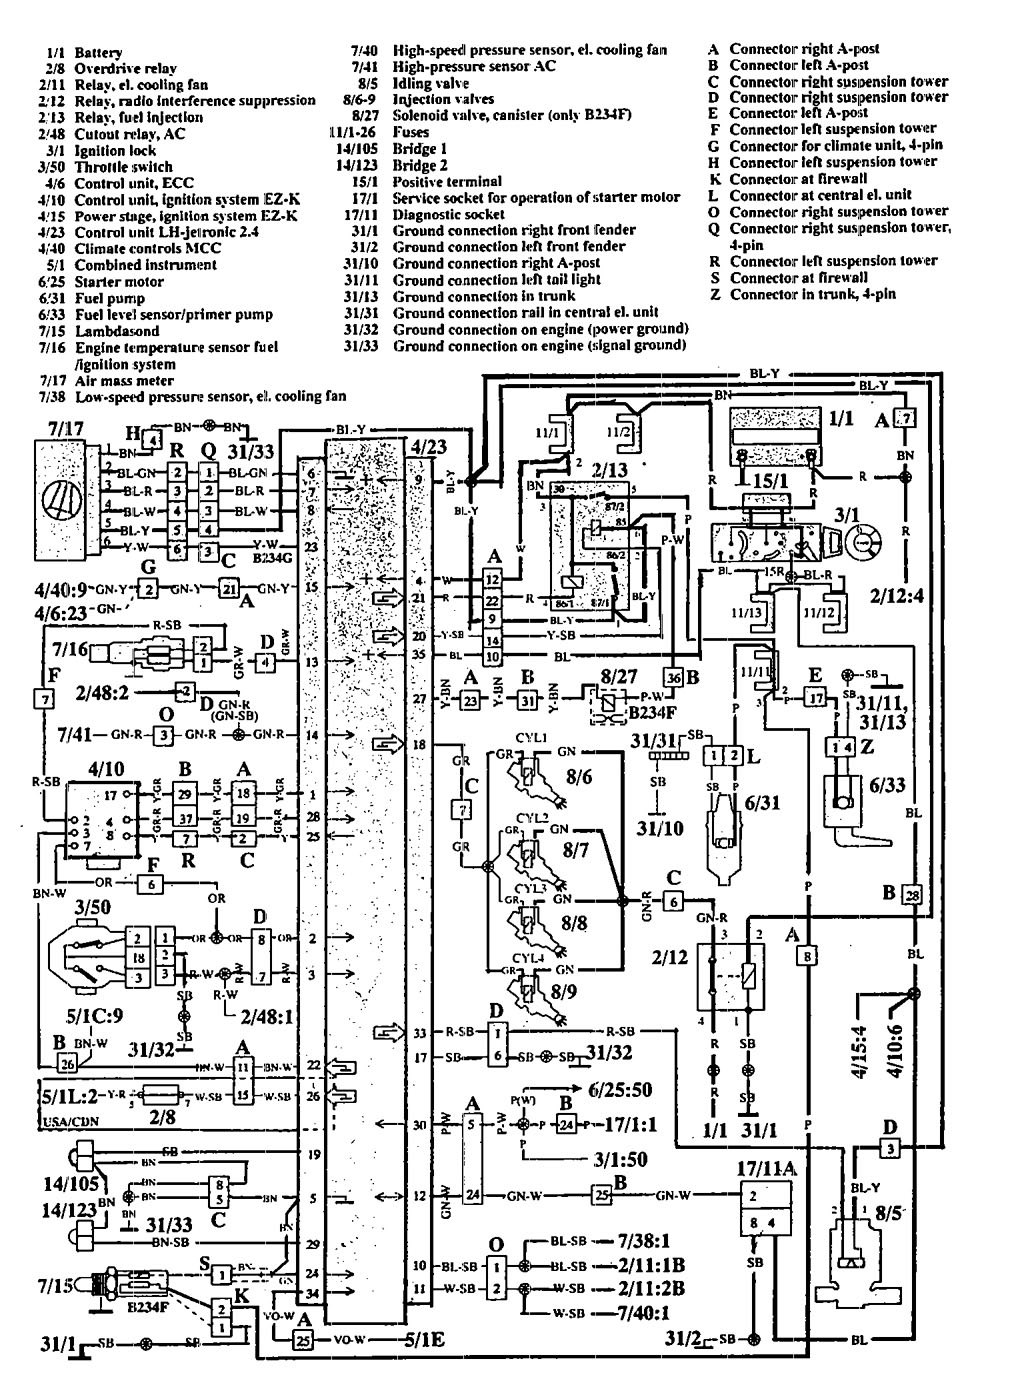 small resolution of 1992 volvo 940 radio wiring electrical wiring diagrams 1992 volvo 240 radio wiring diagram 1992 volvo 940 radio wiring